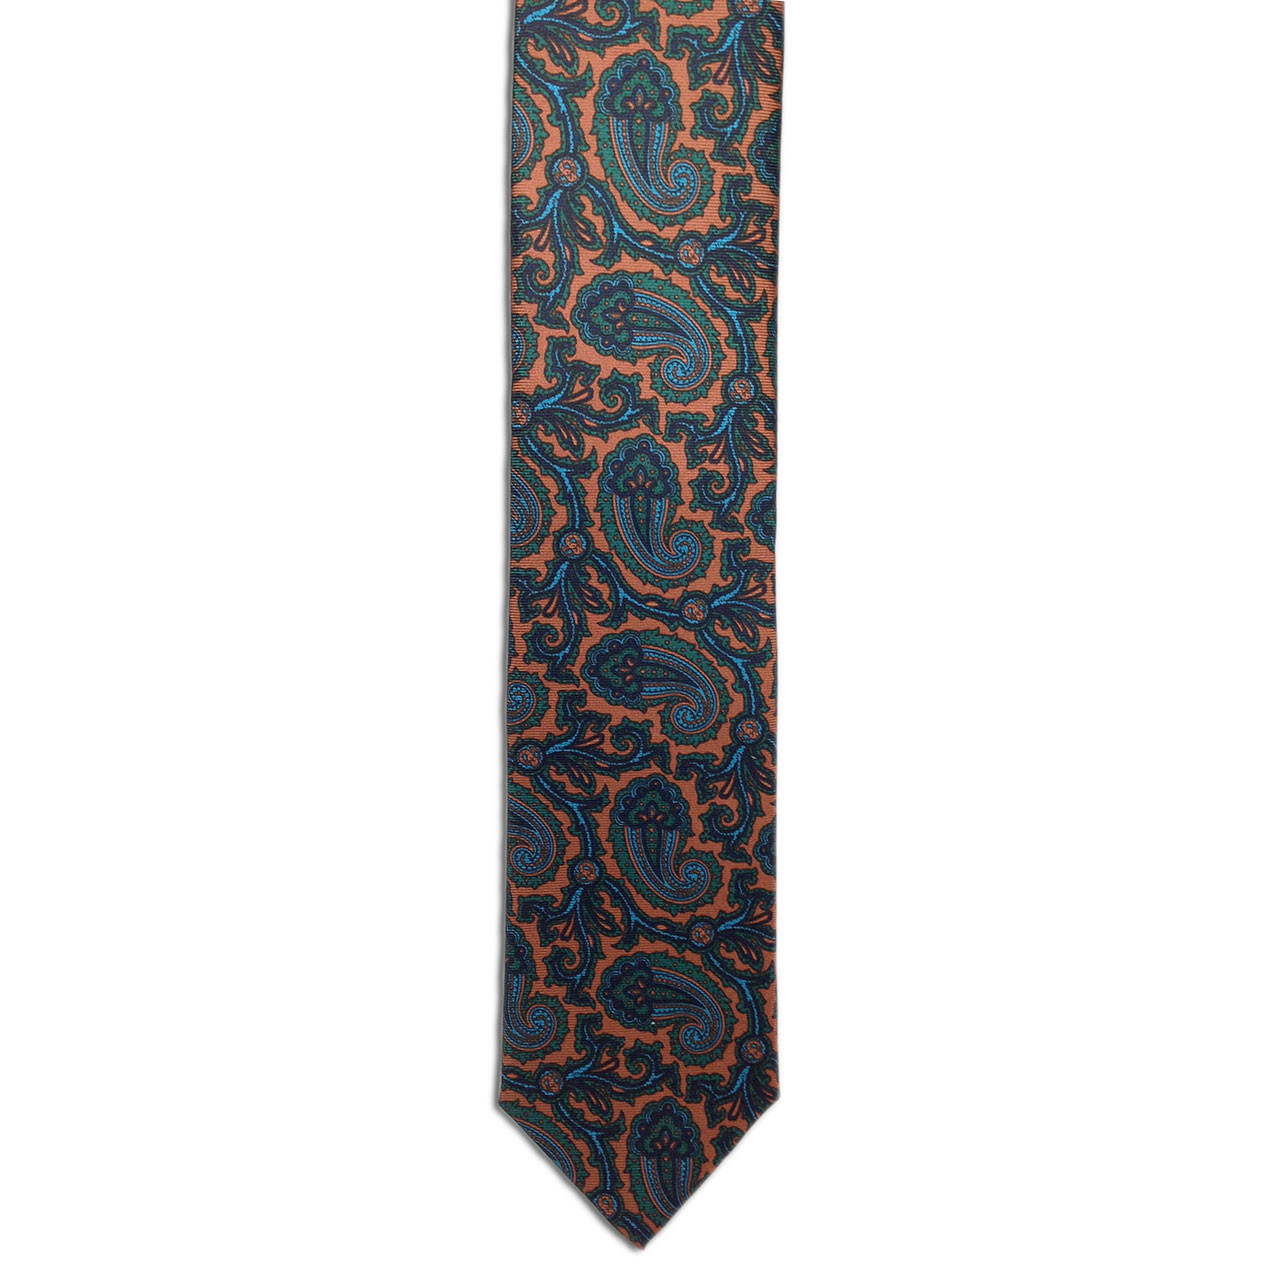 Rust Ancient Madder Paisley Print Tie - Chipp Neckwear 5c7aaabc3399